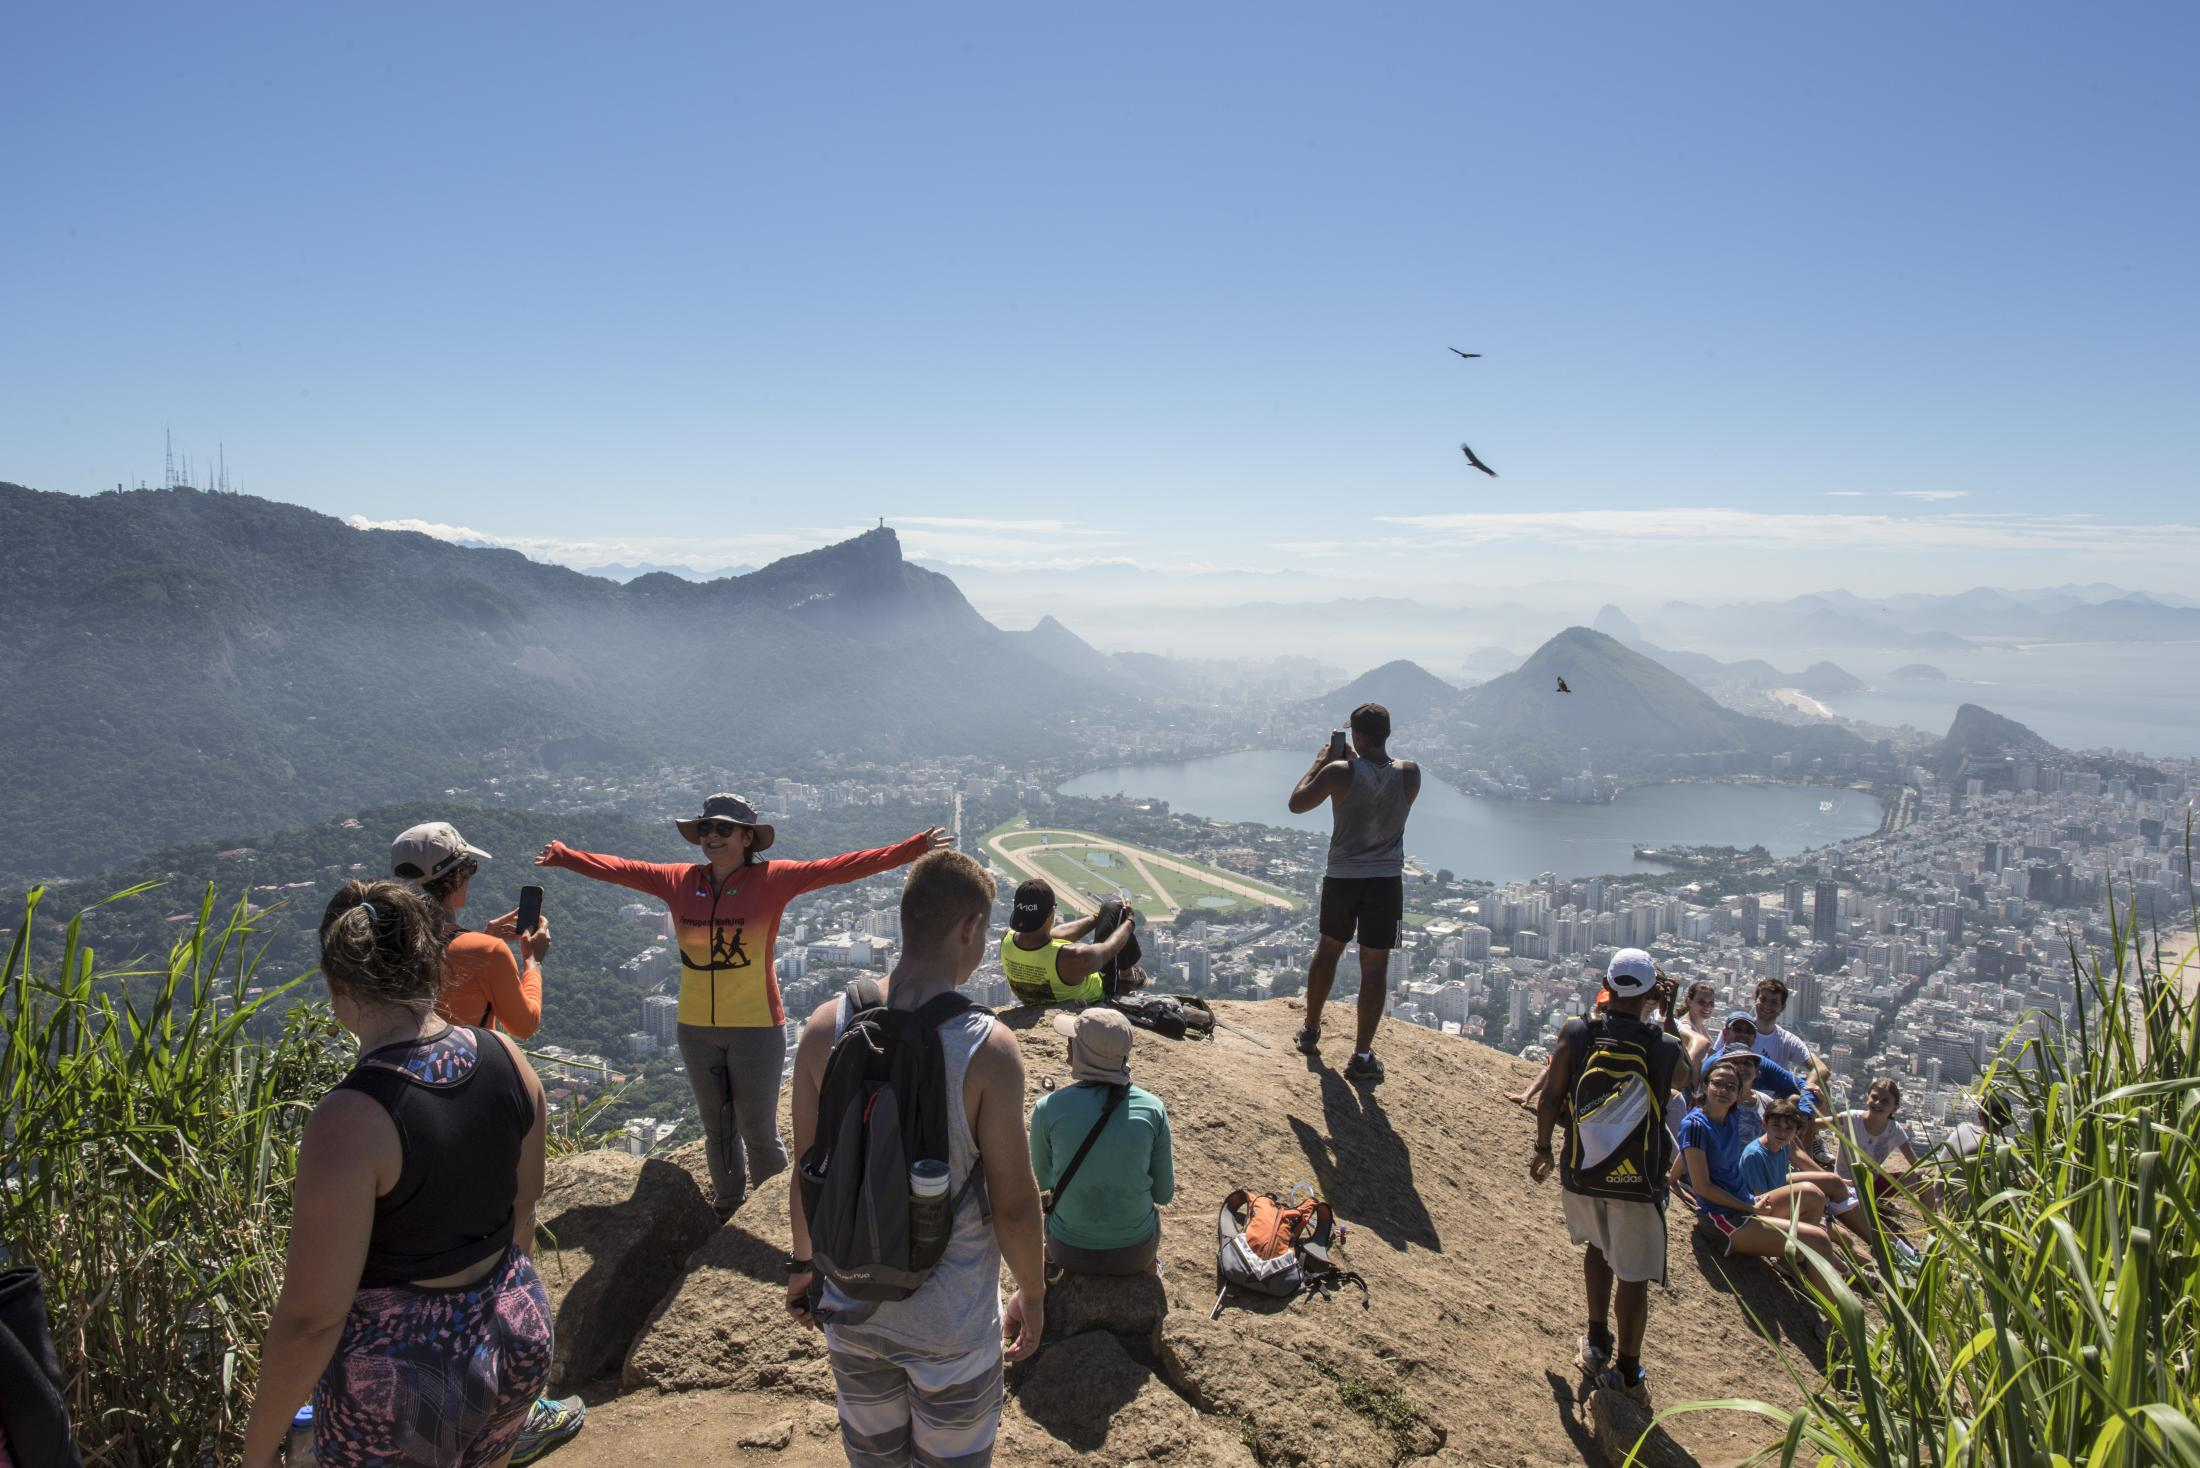 Tourists climb up the Dois Irmãos mountains using a hiking trail that has its starting point in Vidigal, a favela in Rio de Janeiro. The trail was off-limits when heavily armed drug gangs ruled the community, but became a popular touristic destination after Vidigal received a so-called Pacification Police Unit, part of a government plan to make the city safer in preparation for the 2016 Olimpic Games